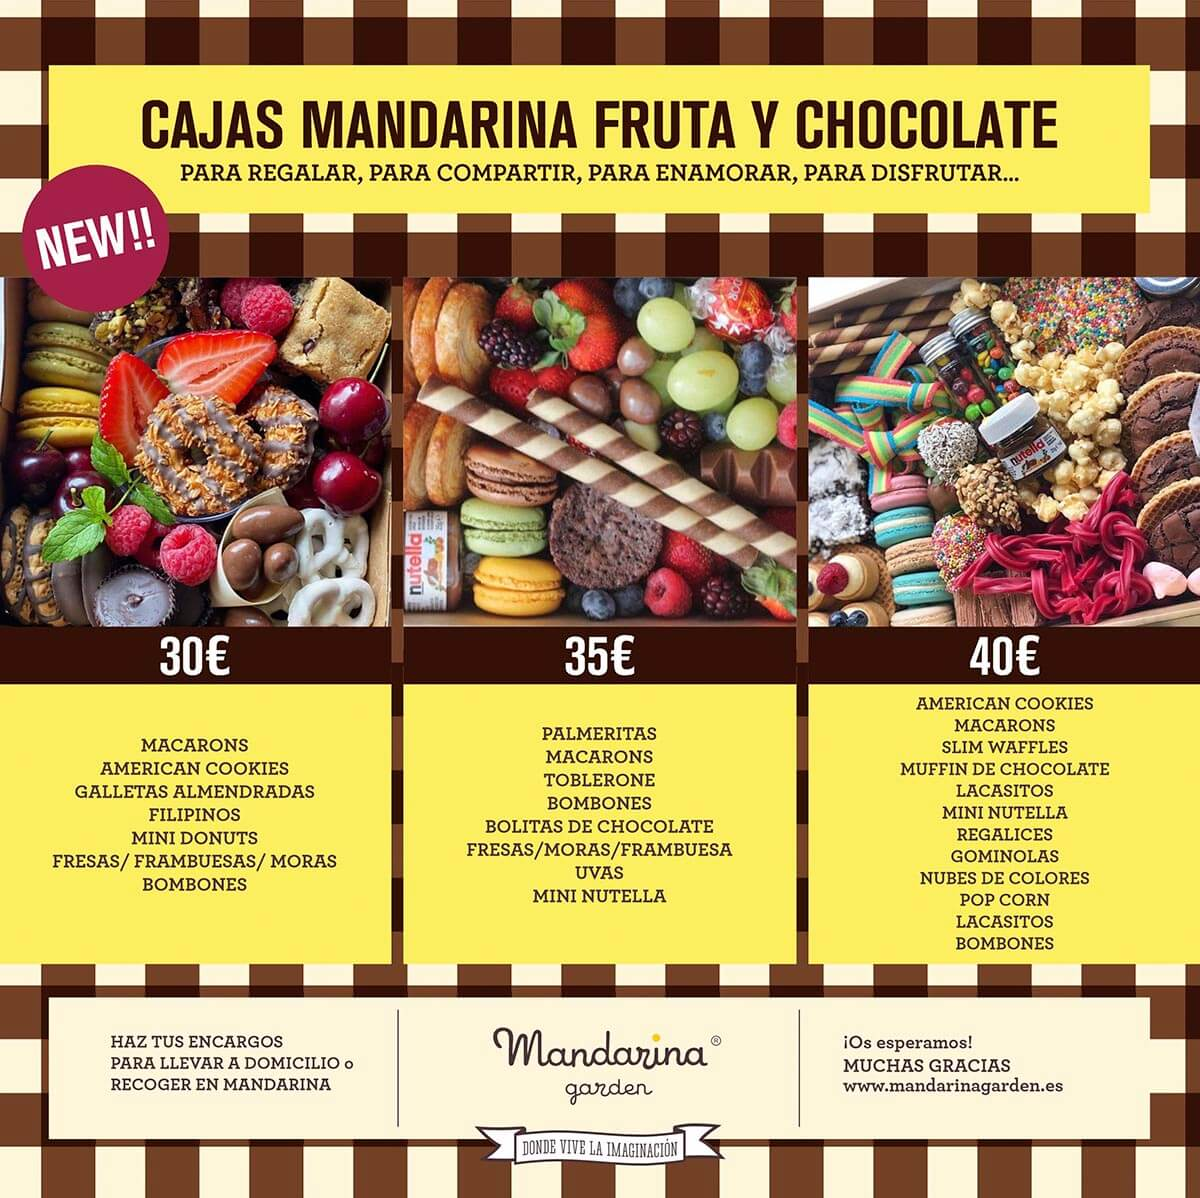 Mandarina garden Delivery. Fruit and candy boxes to give away, share, enjoy, fall in love ...